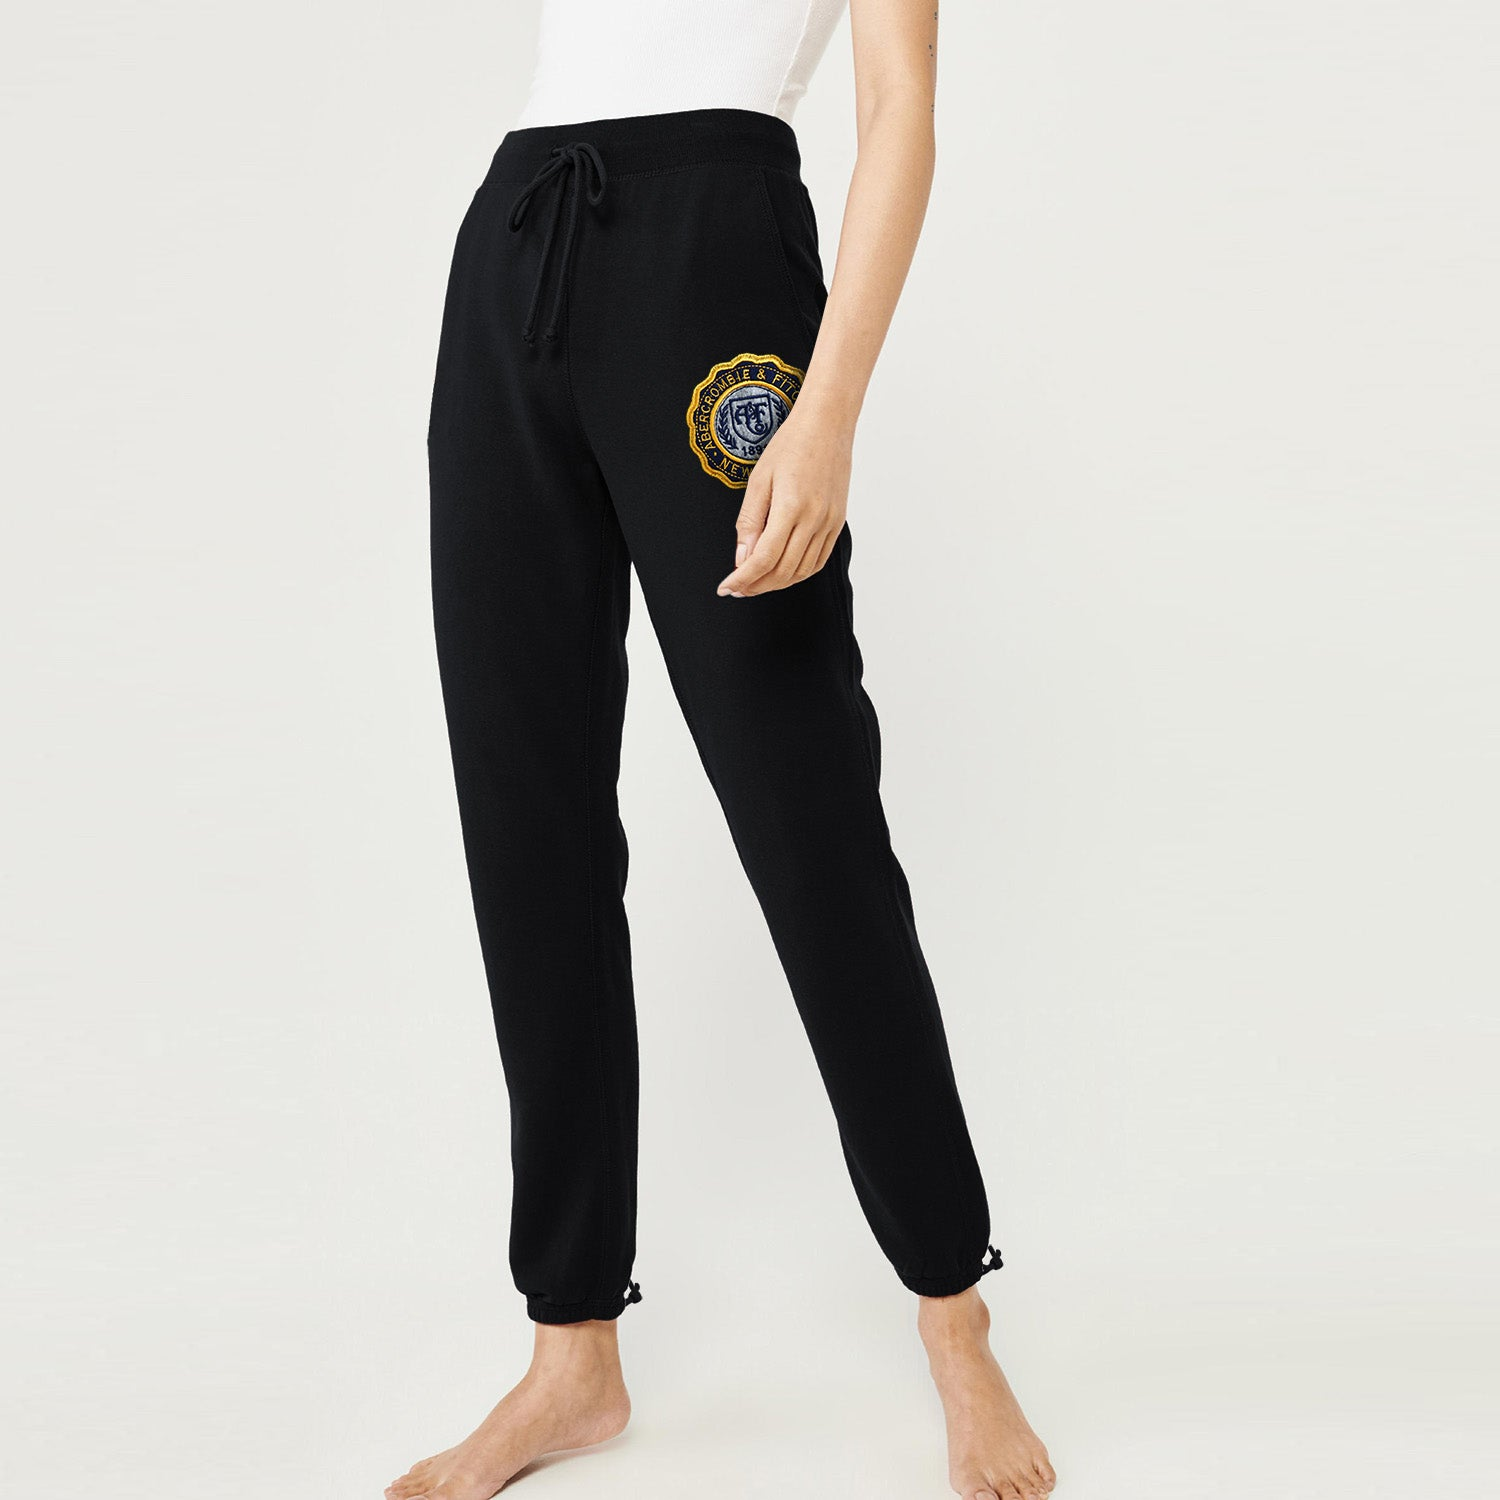 A&F Terry Fleece Yellow Navy & Grey Embroidery Gathering Jogger Trouser For Ladies-Black-BE9733